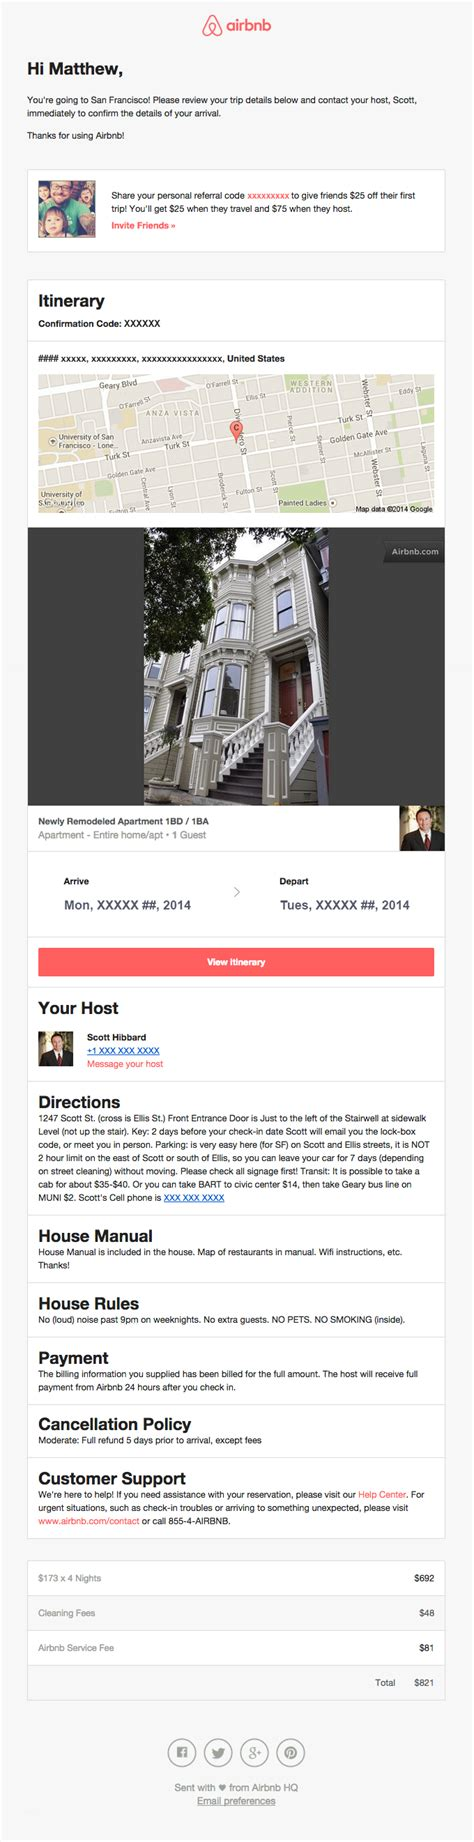 airbnb email reservation confirmation email from airbnb really good